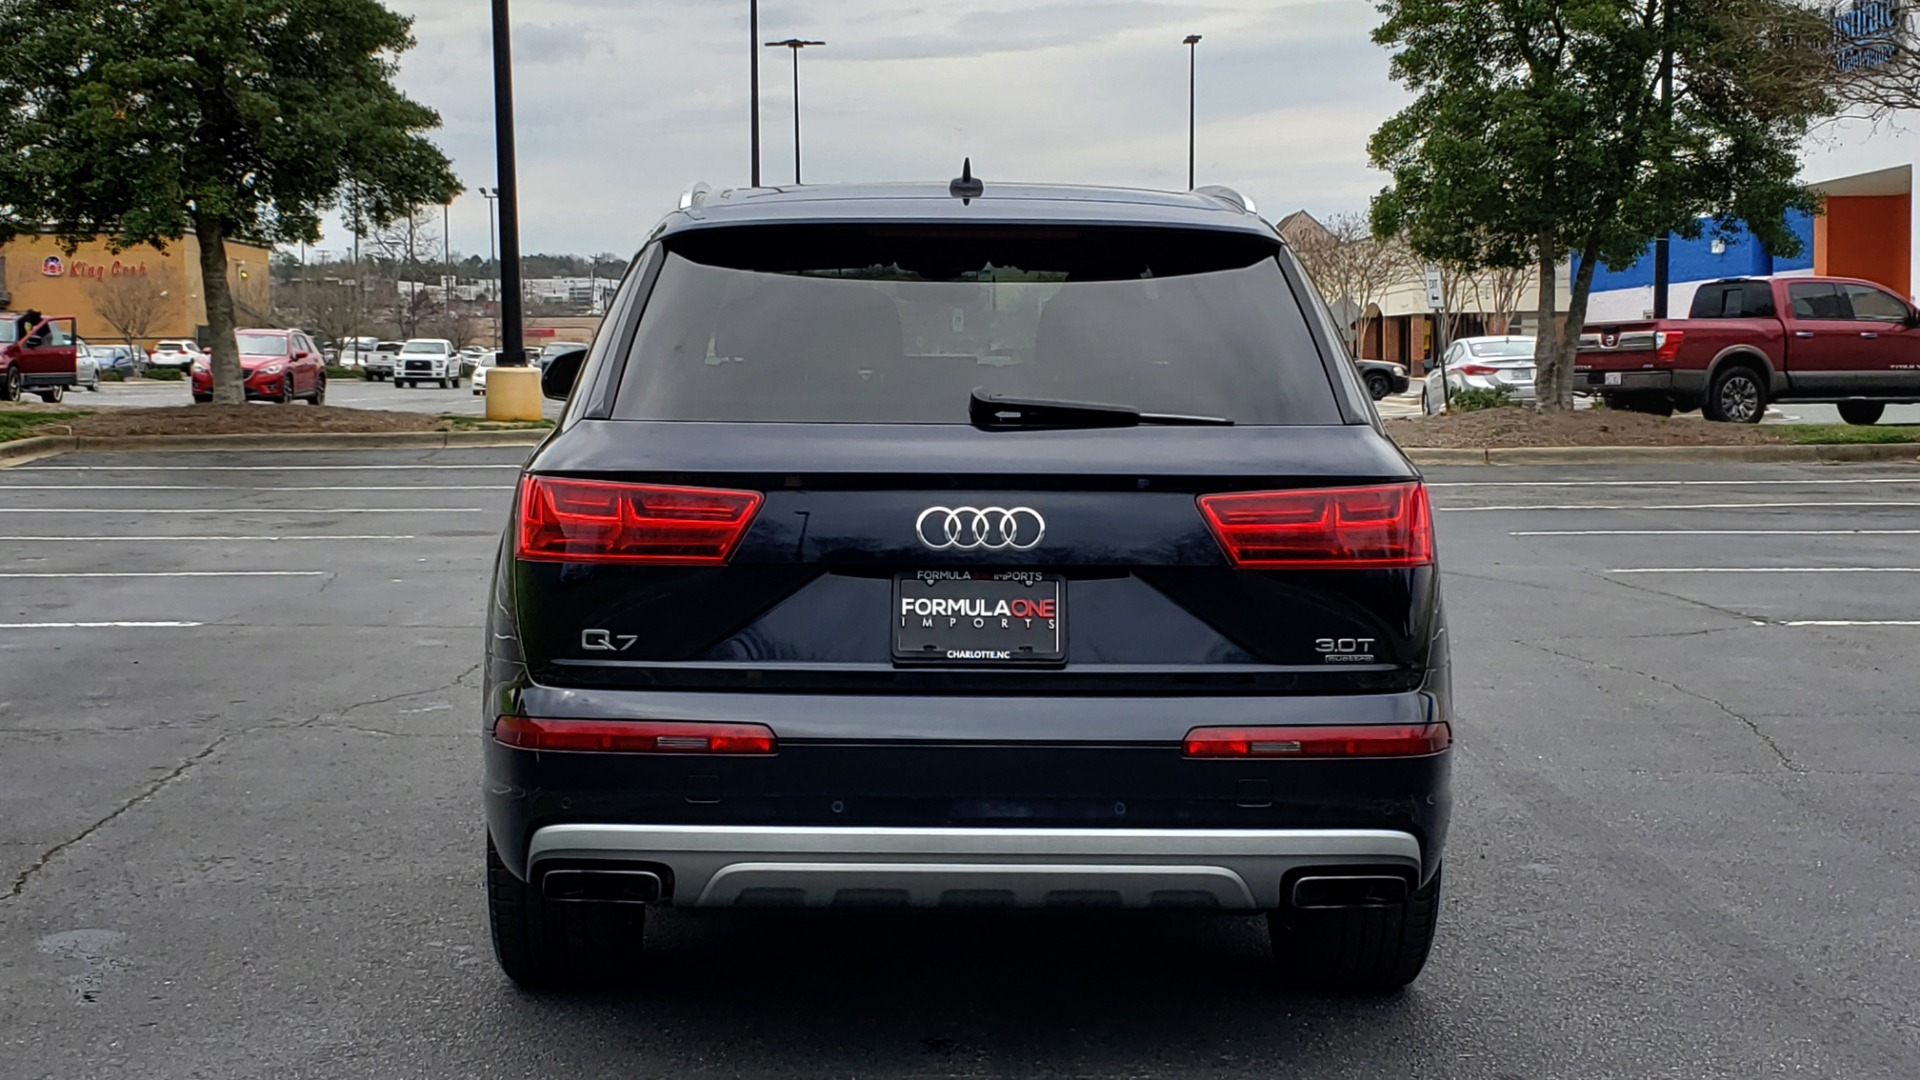 Used 2017 Audi Q7 PRESTIGE 3.0T / AWD / NAV / PANO-ROOF / HTD STS / BOSE / VISION for sale Sold at Formula Imports in Charlotte NC 28227 26